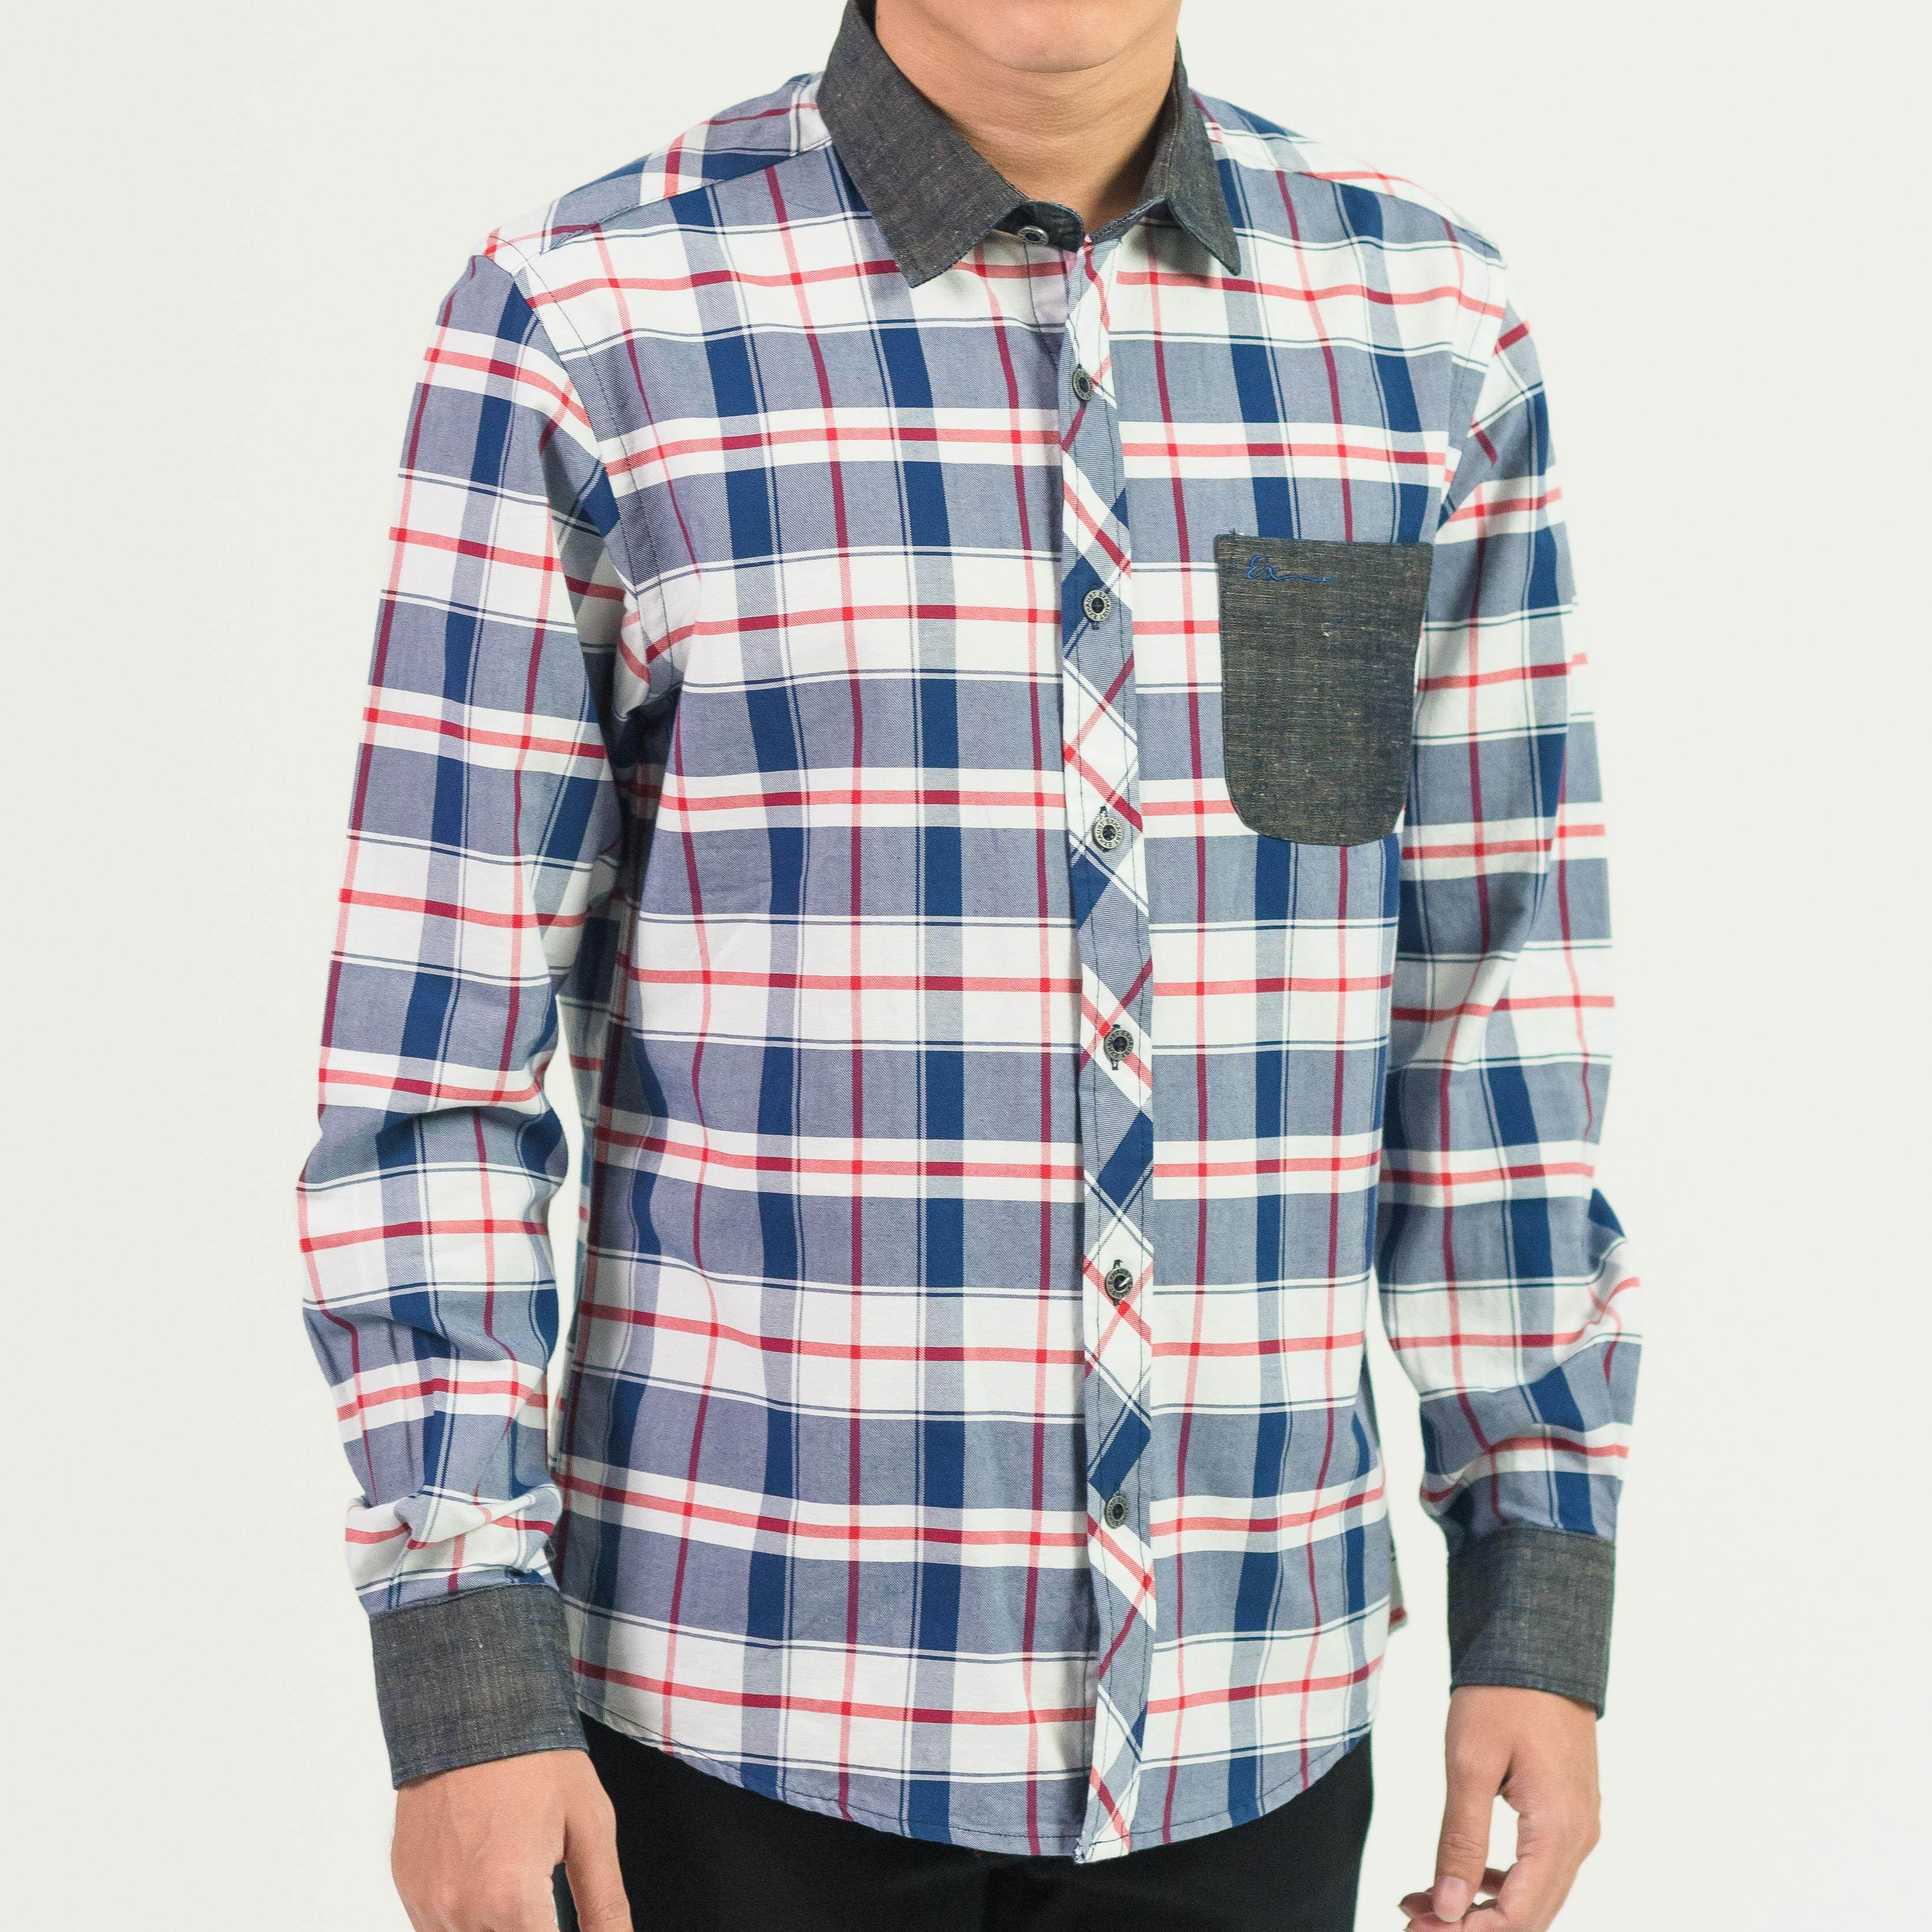 MEN'S SHORT SLEEVE CHECKED SHIRT WITH POCKET B79-40389#4